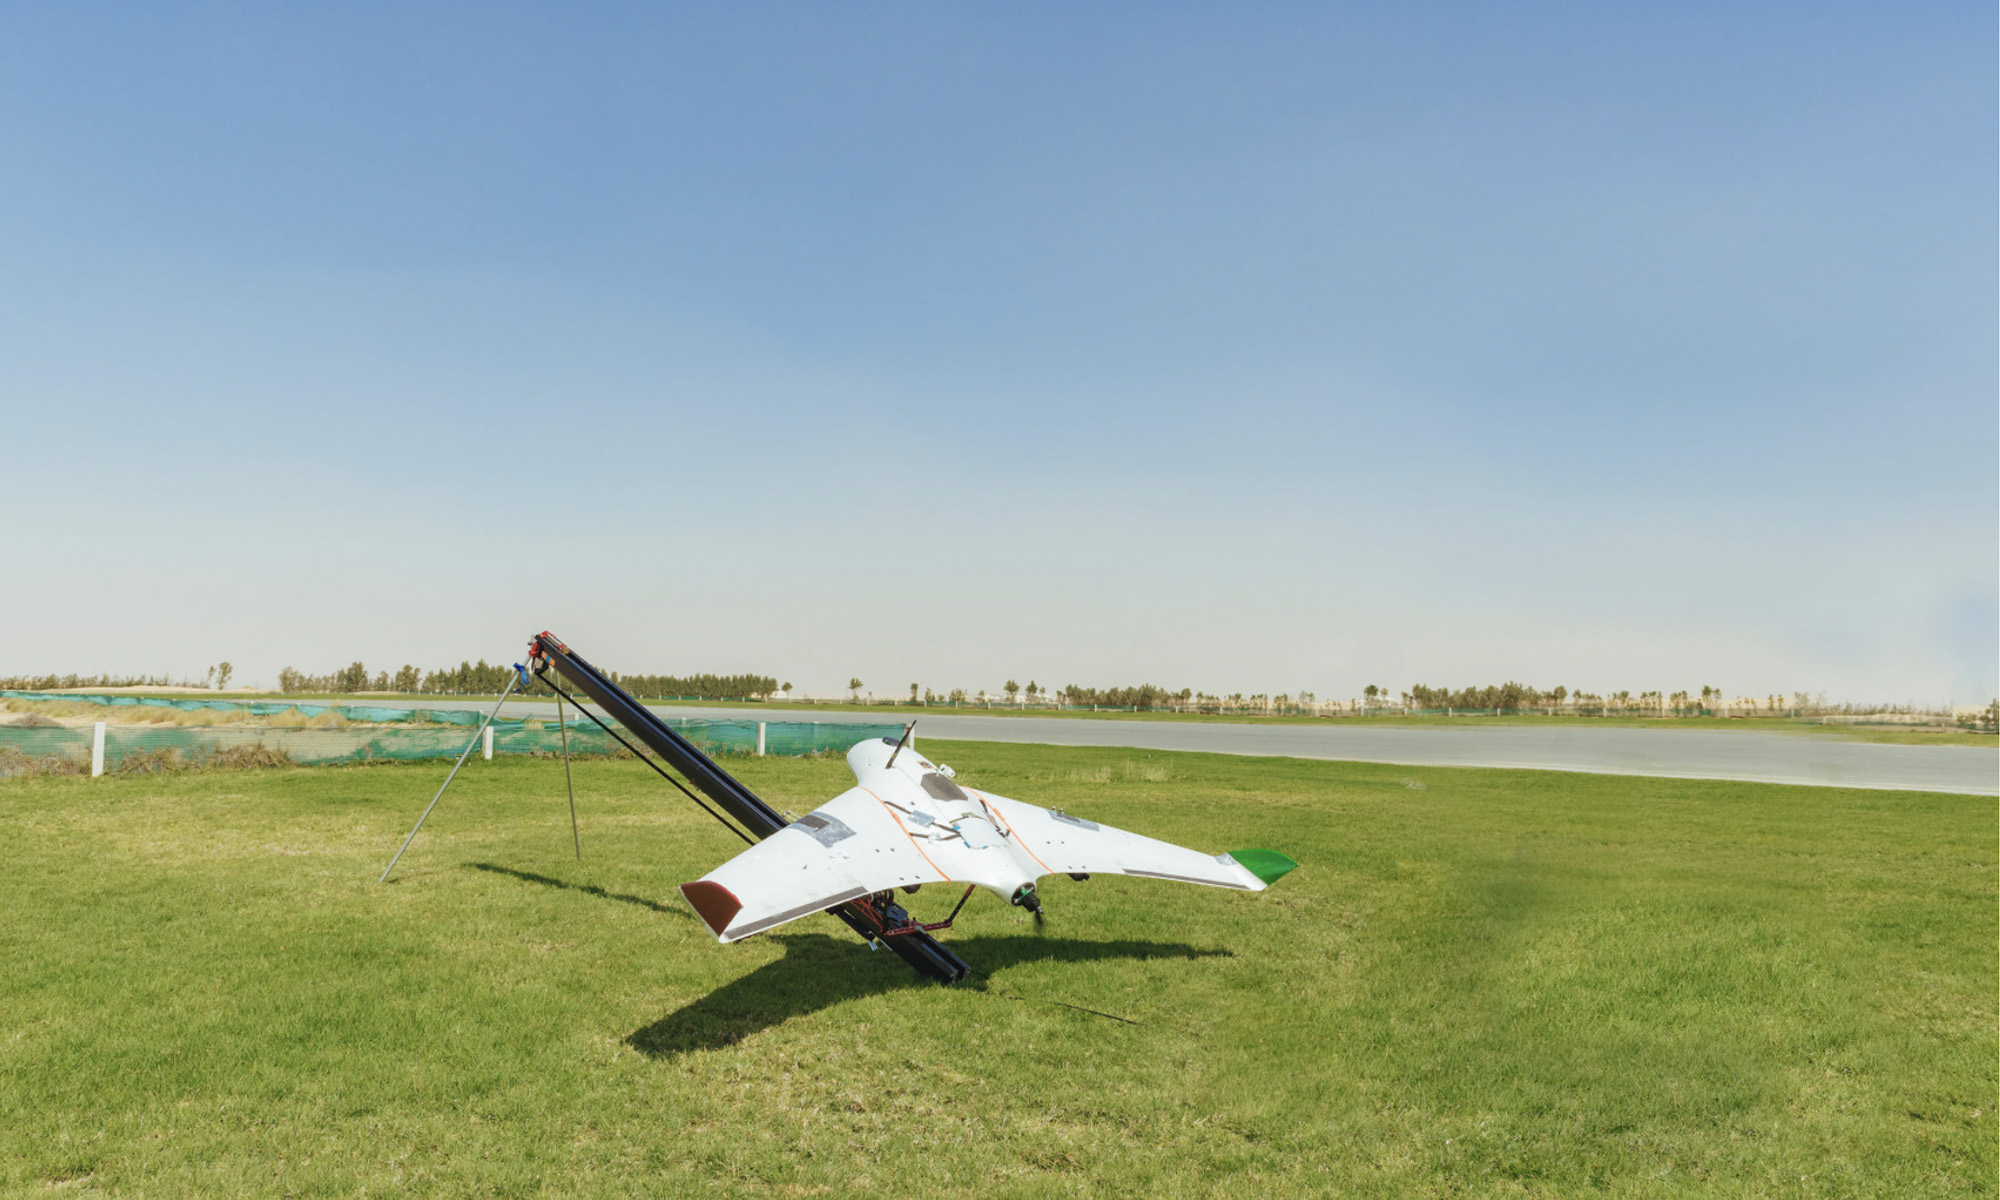 uae to release hordes of cloud triggering drones to make it rain